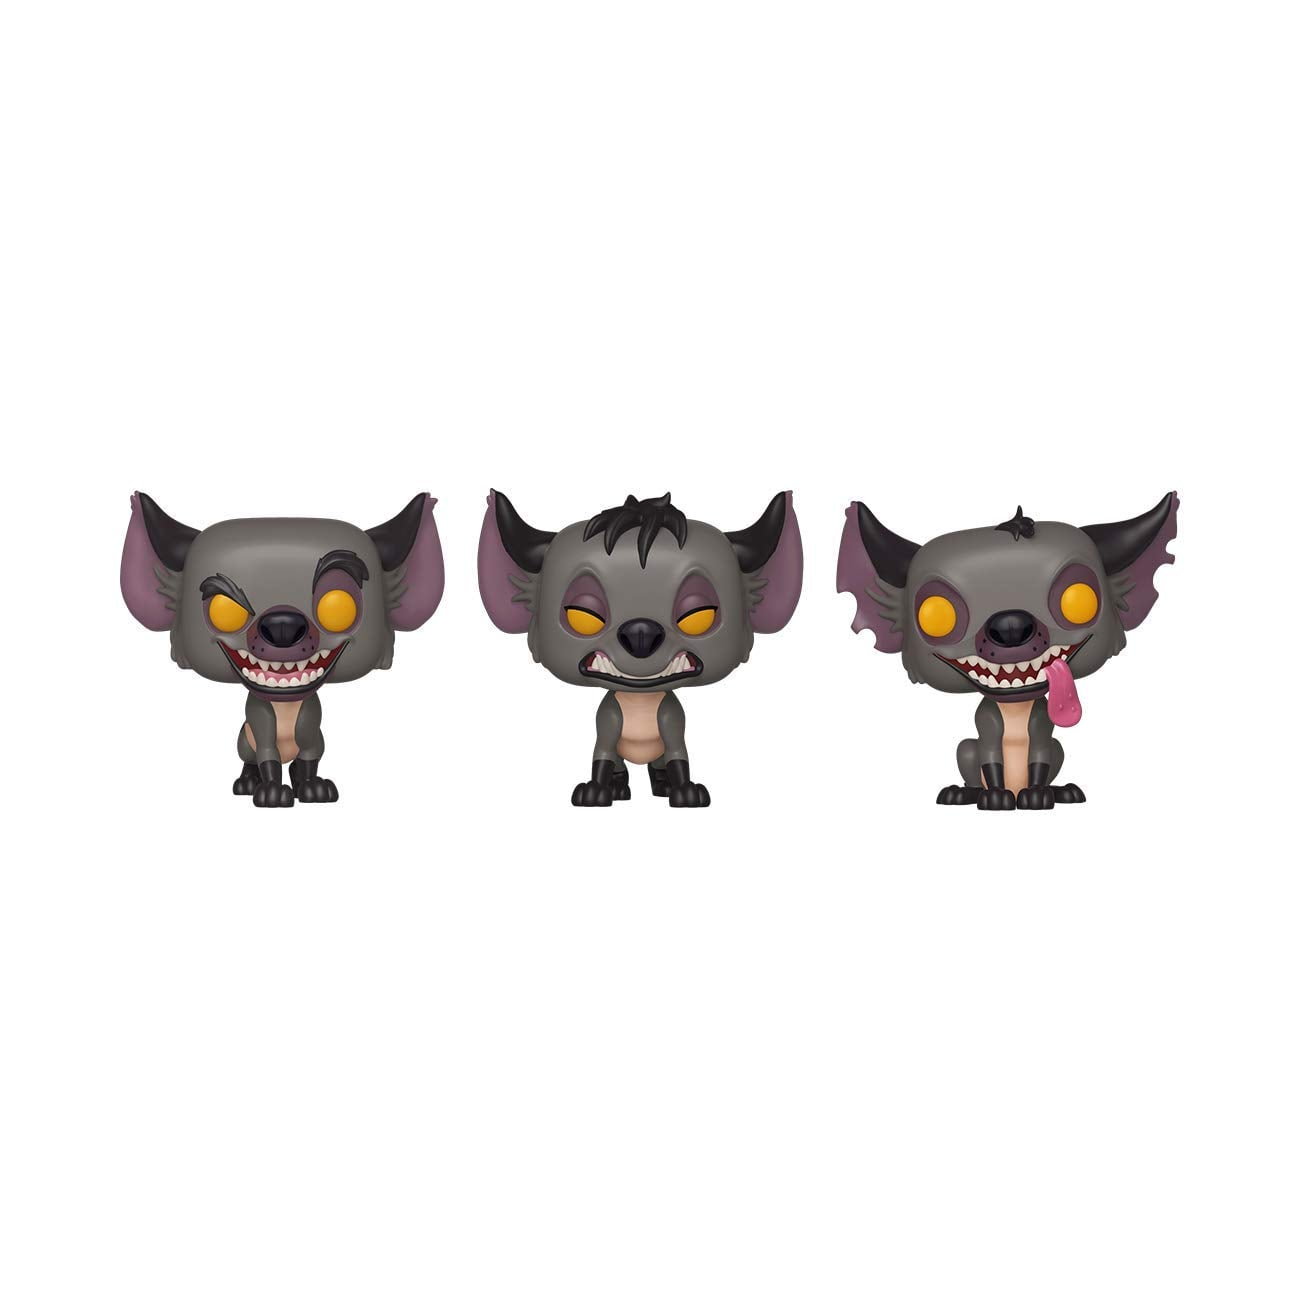 Funko Is Releasing a Threesome of Pops For the Hyenas From The Lion King, and Cue the Ridiculous Laughter